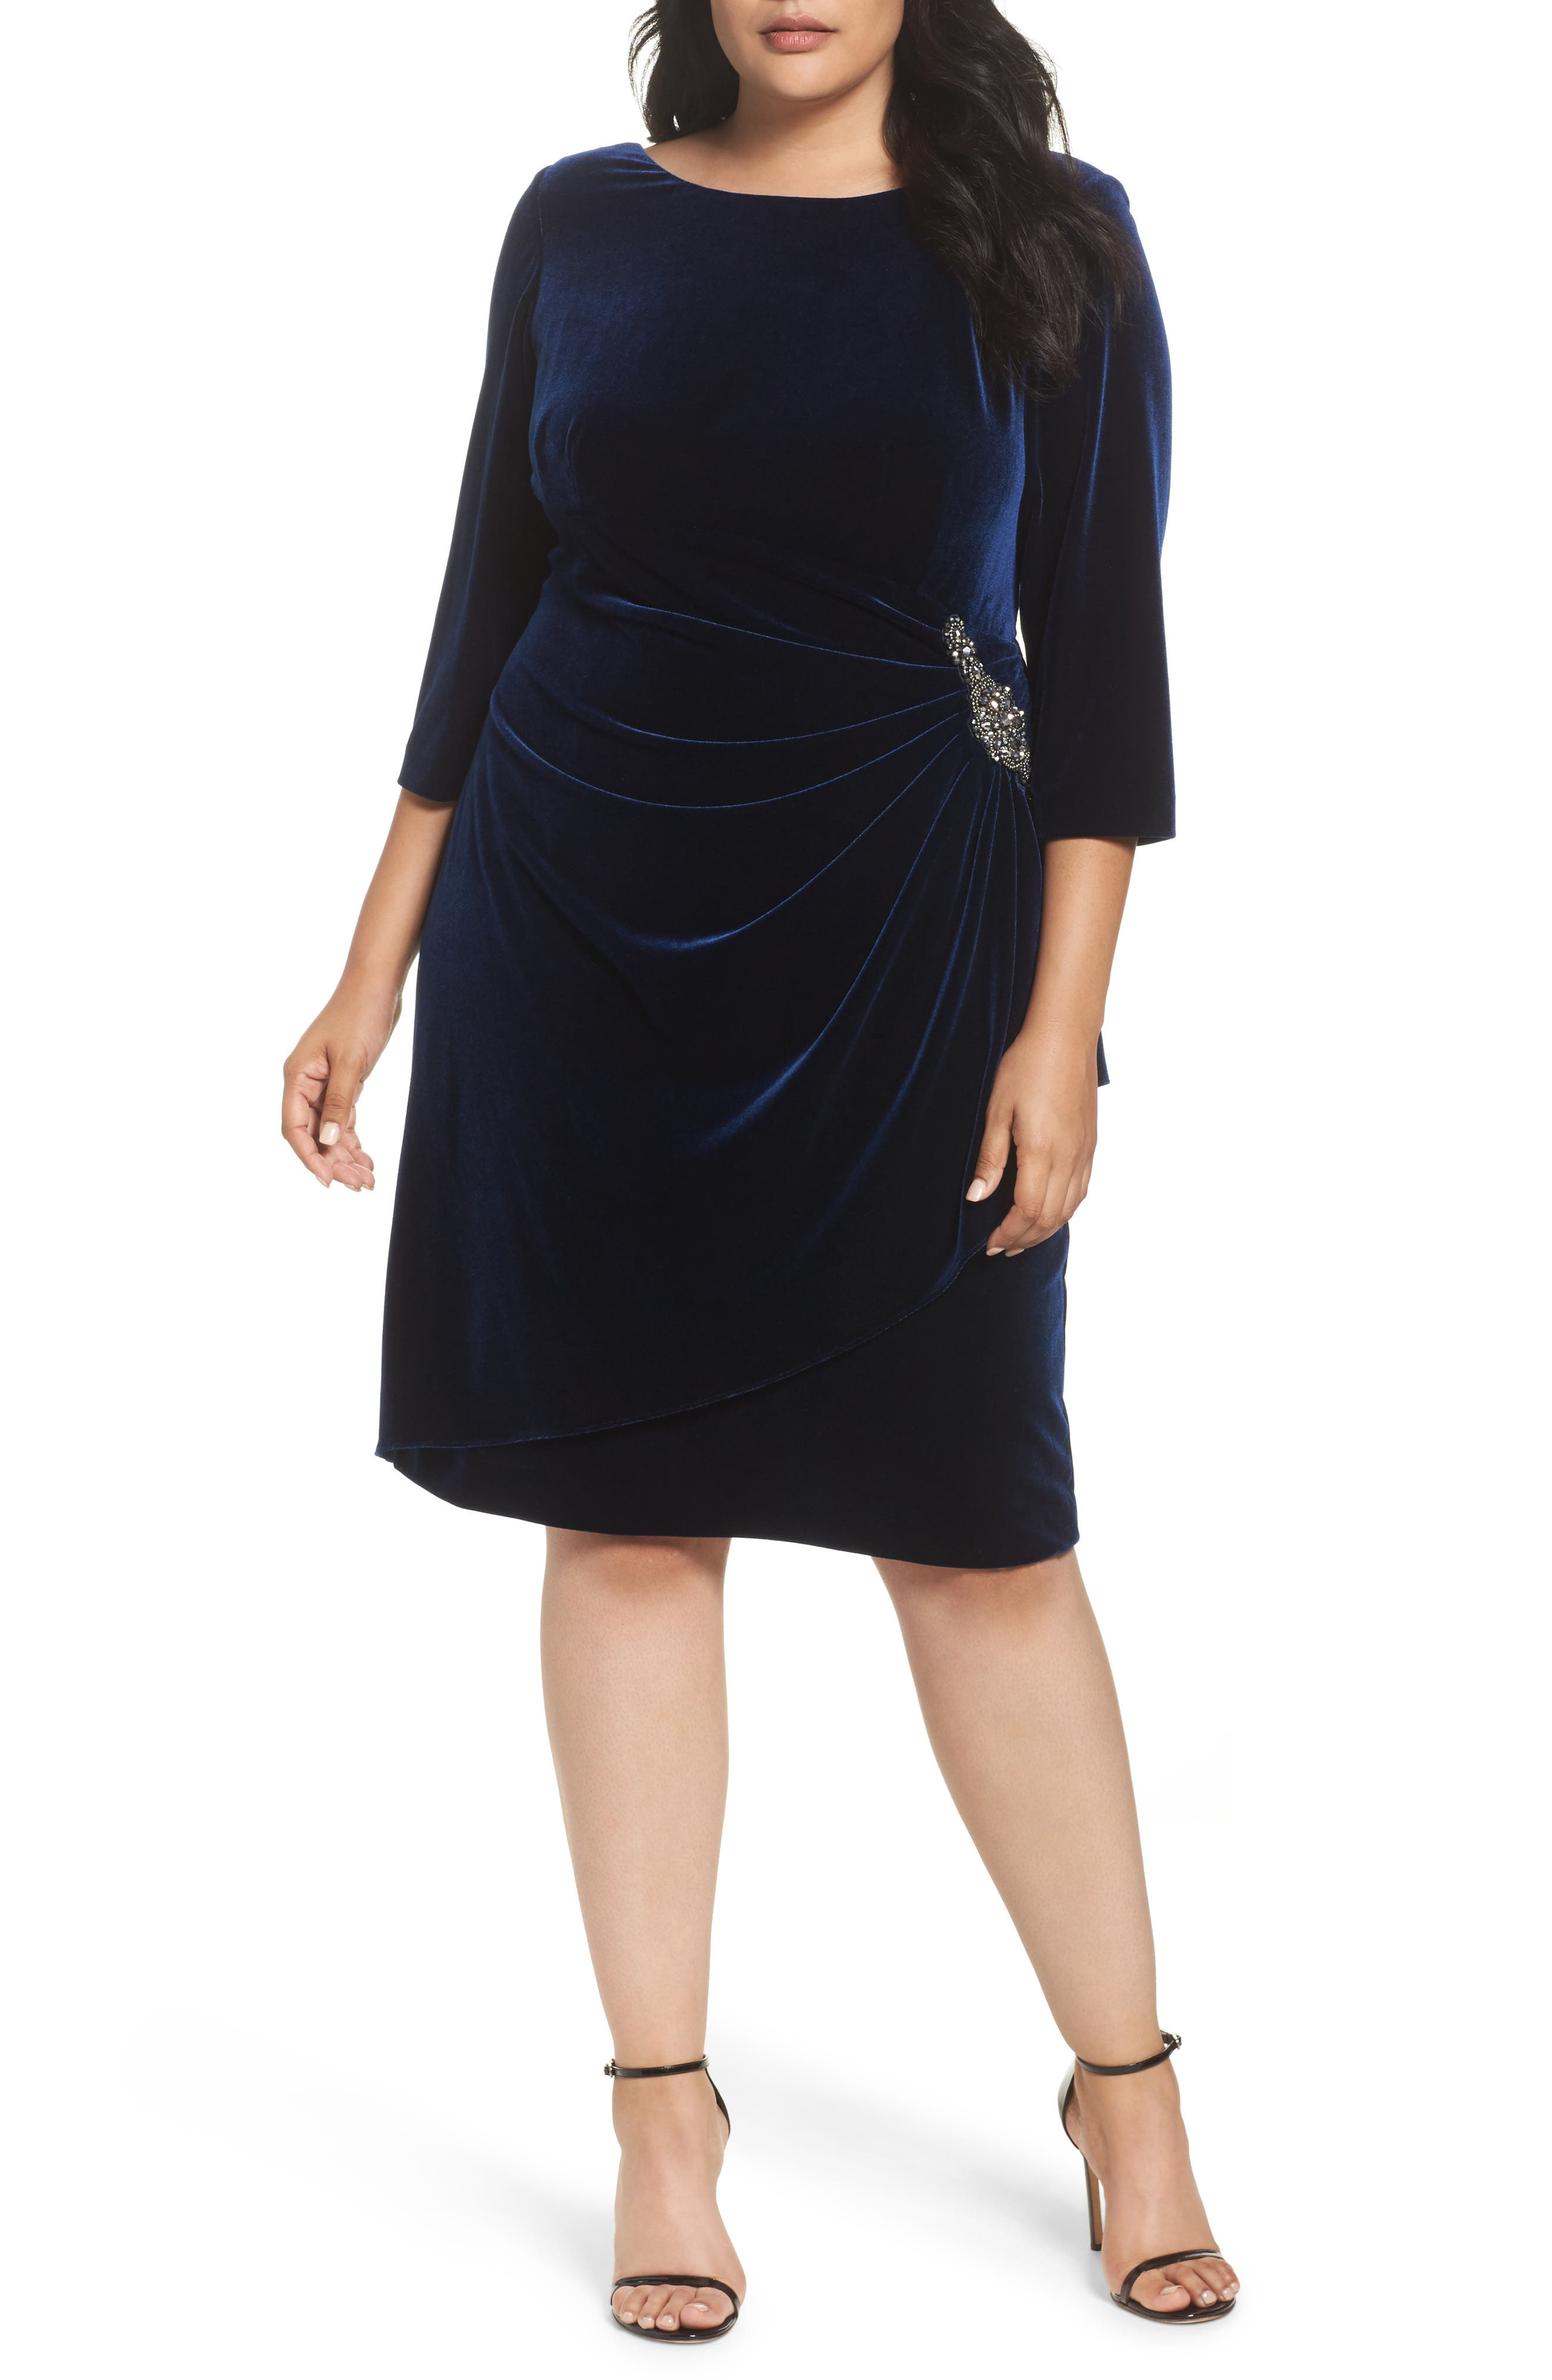 Alternate Image 1 Selected - Alex Evenings Embellished Faux Wrap Velvet Dress (Plus Size)